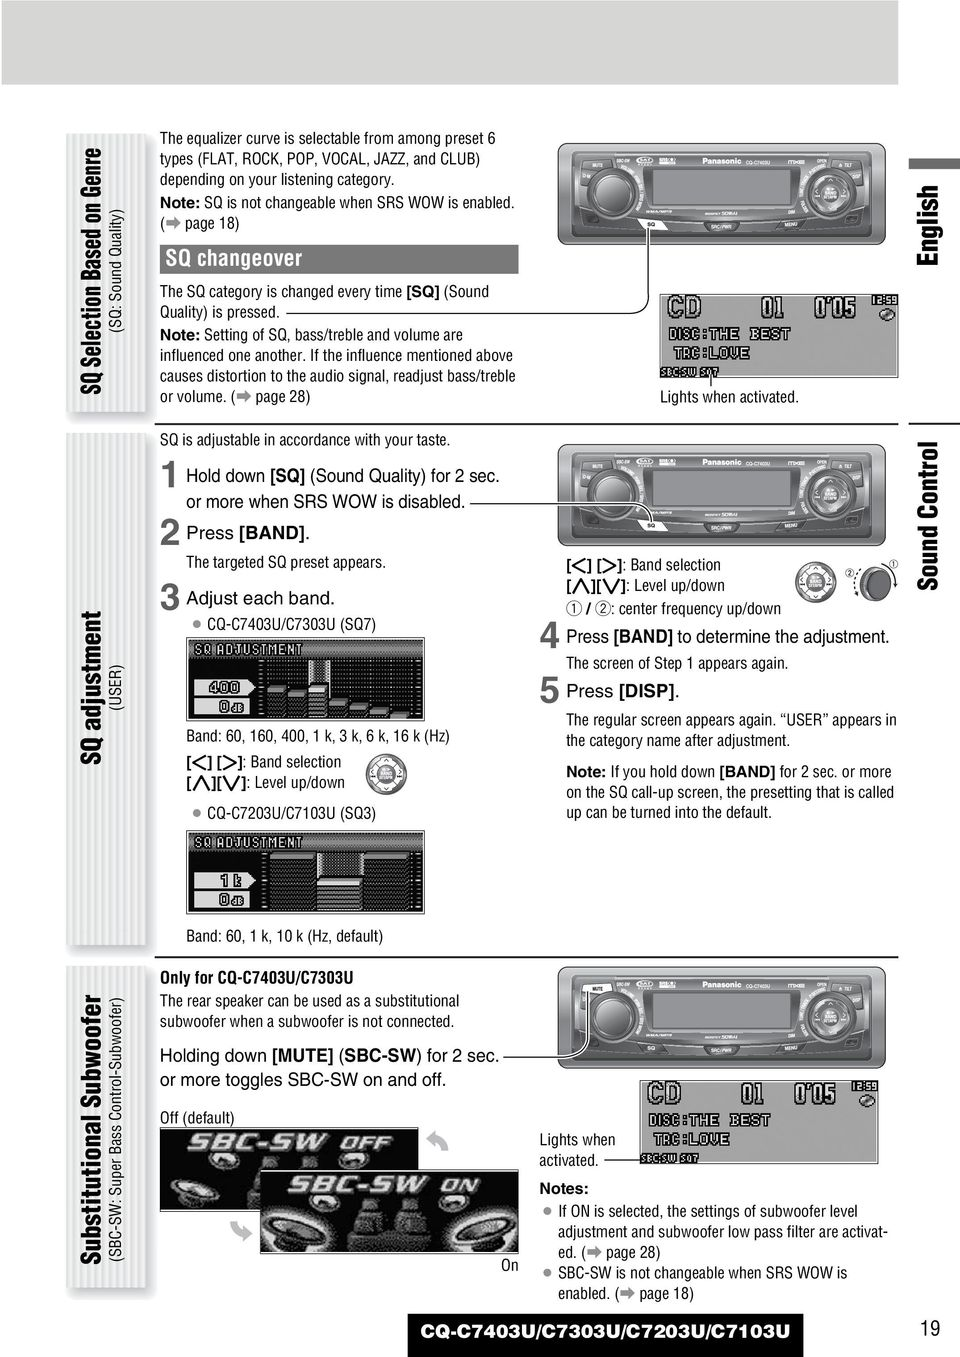 Panasonic Cq C7301u Wiring Diagram C7103u Library Note Setting Of Sq Bass Treble And Volume Are Influenced One Another